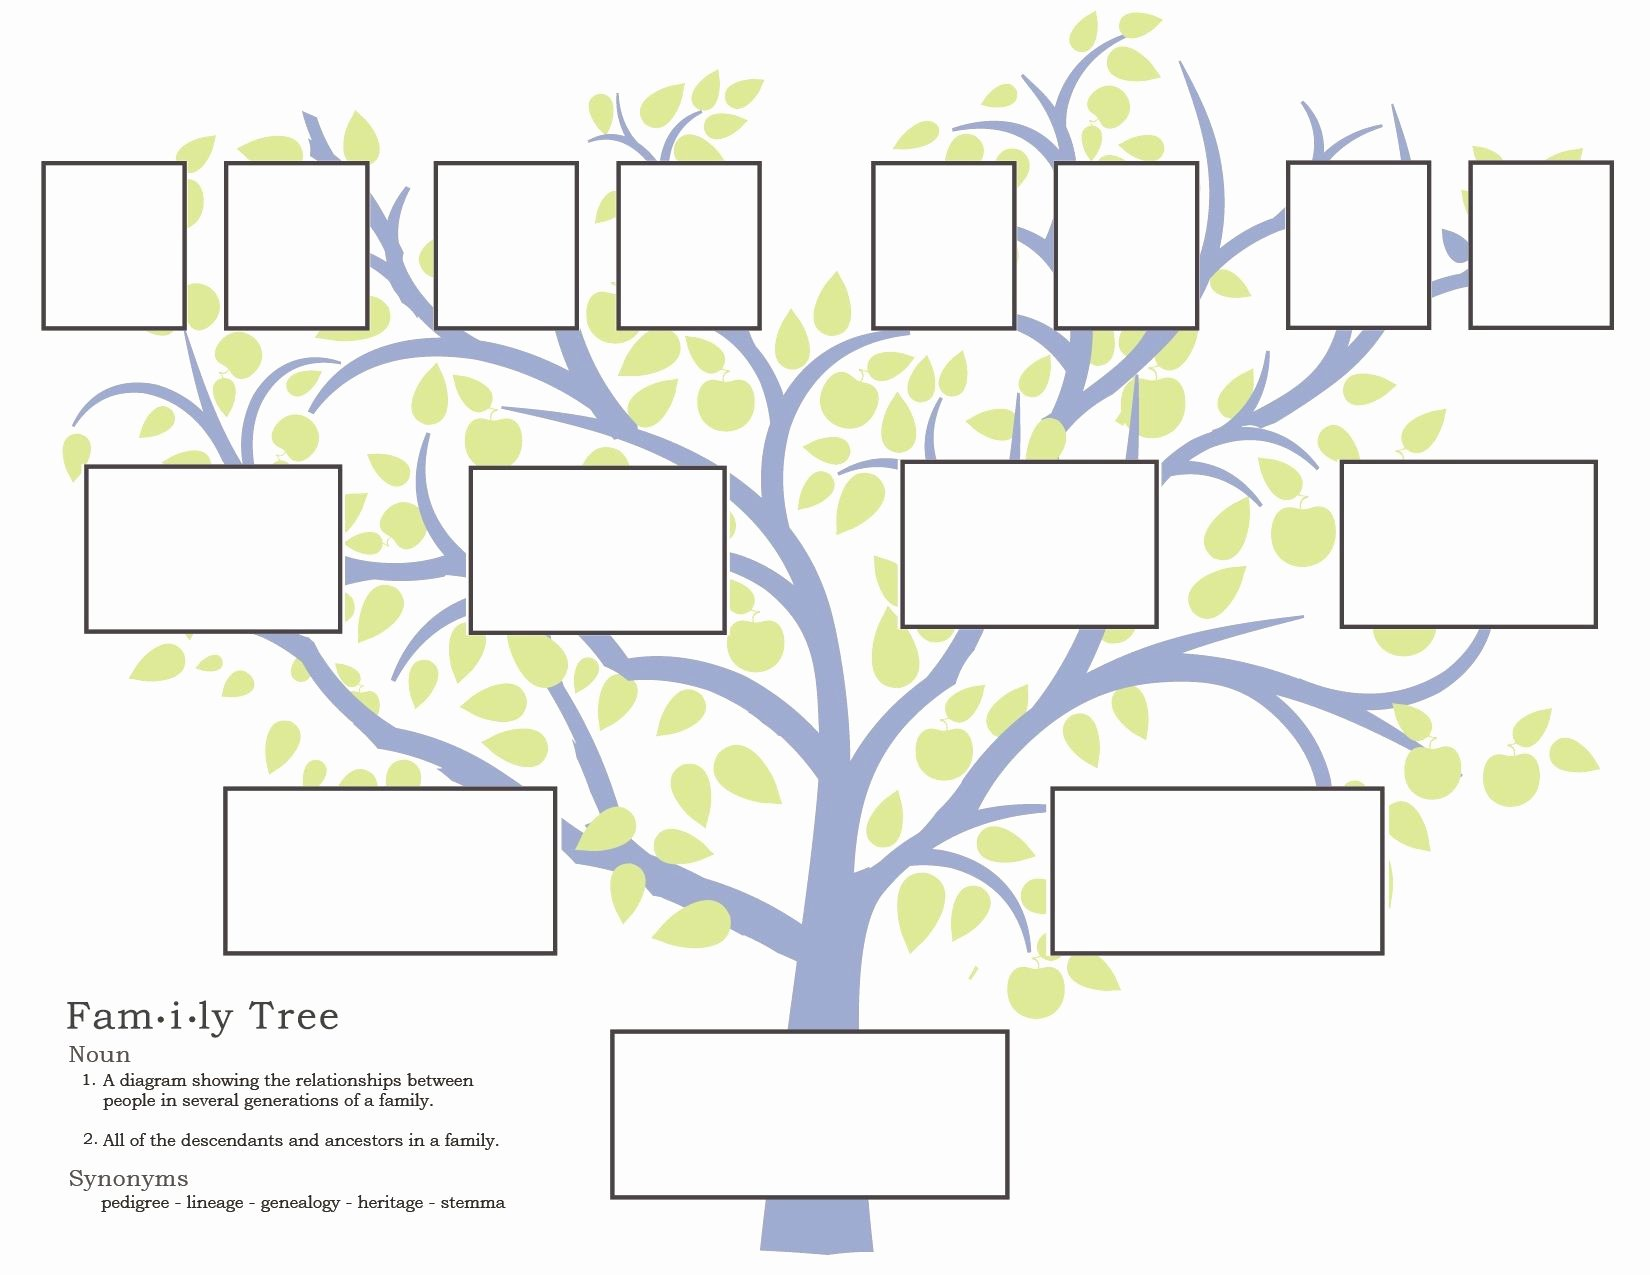 Simple Family Tree Template Beautiful Family History Activities for Children 3 11